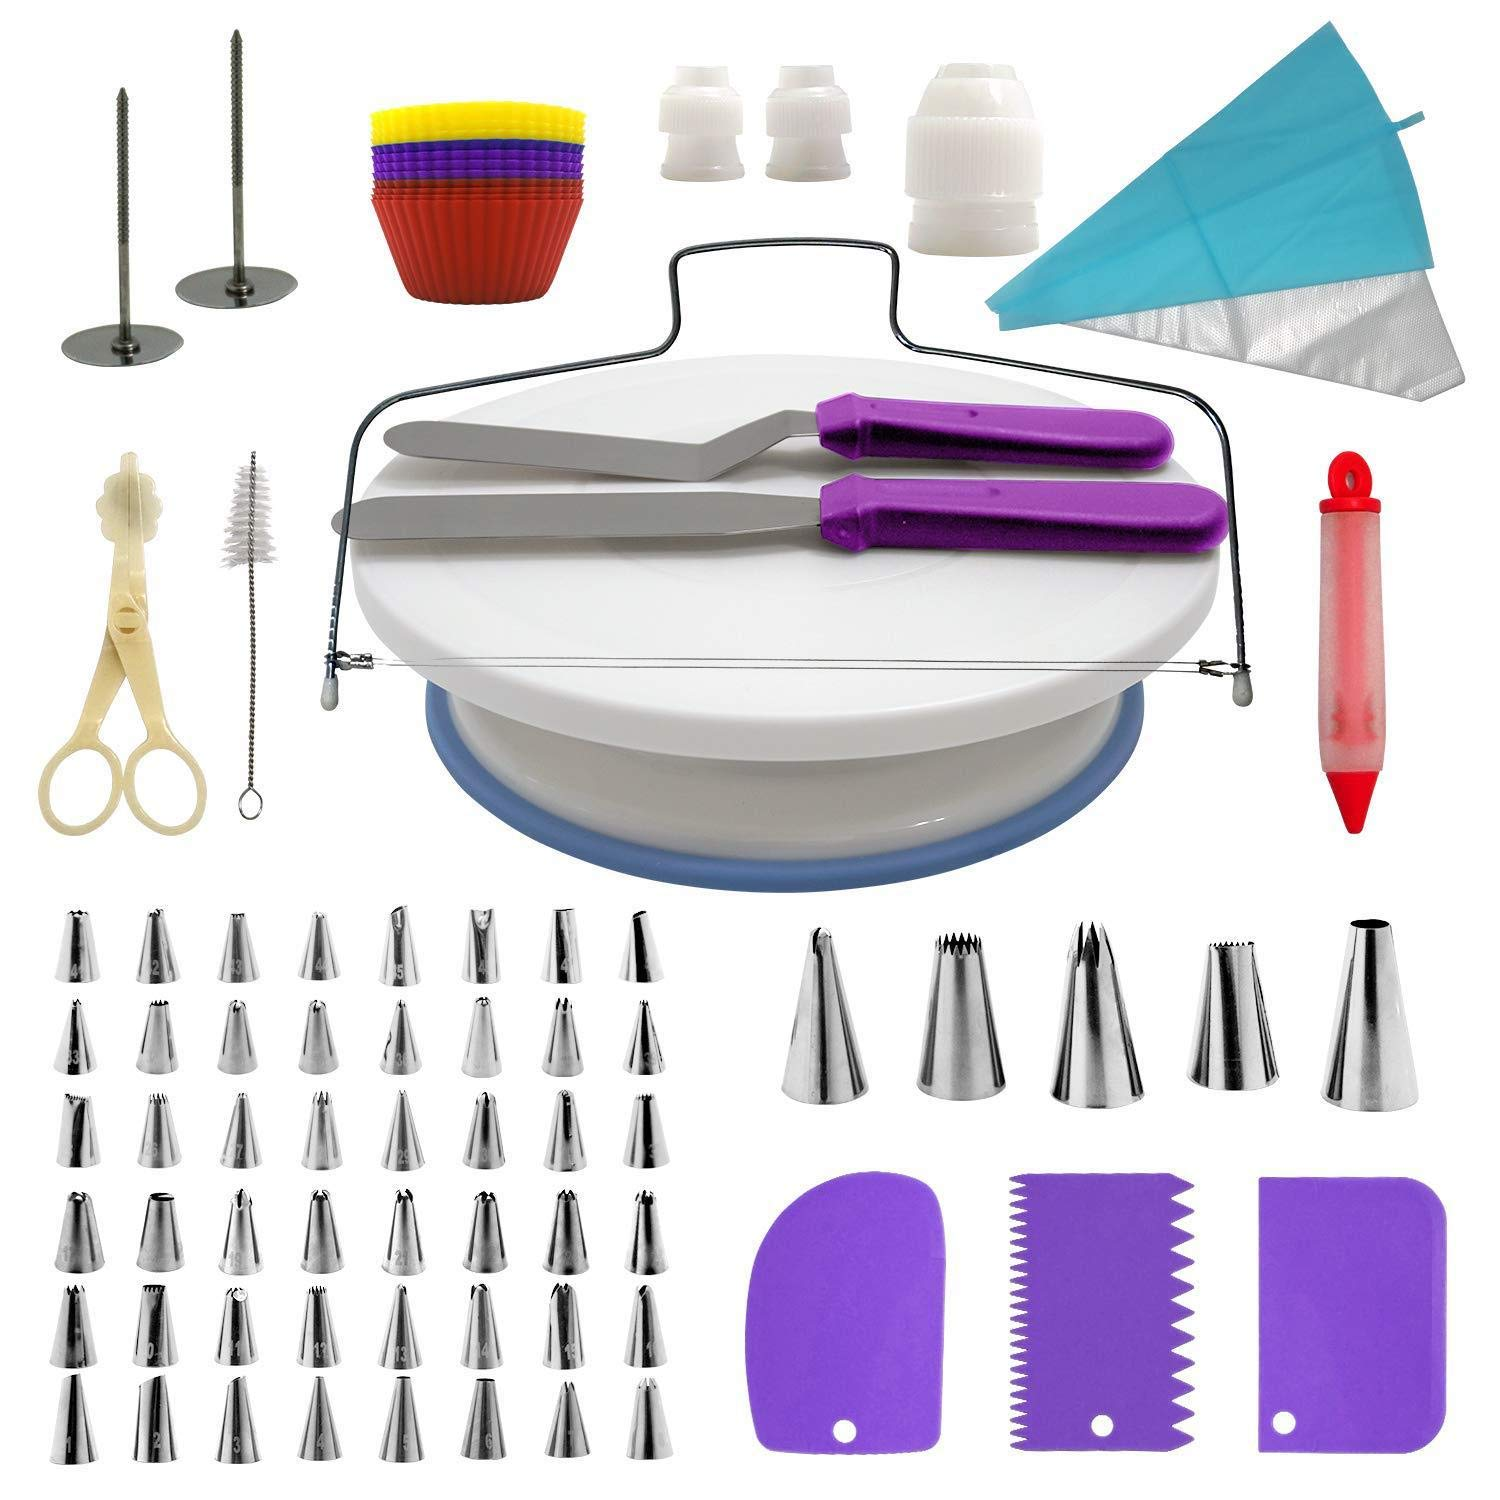 CCOOL 106-Piece Cake Decorating Supplies Tips Kits Stainless Steel Baking Supplies Icing Tips with Pastry Bags, 3 Icing Smoothers, 1 Flower Nails and 2 Reusable Coupler,Purple